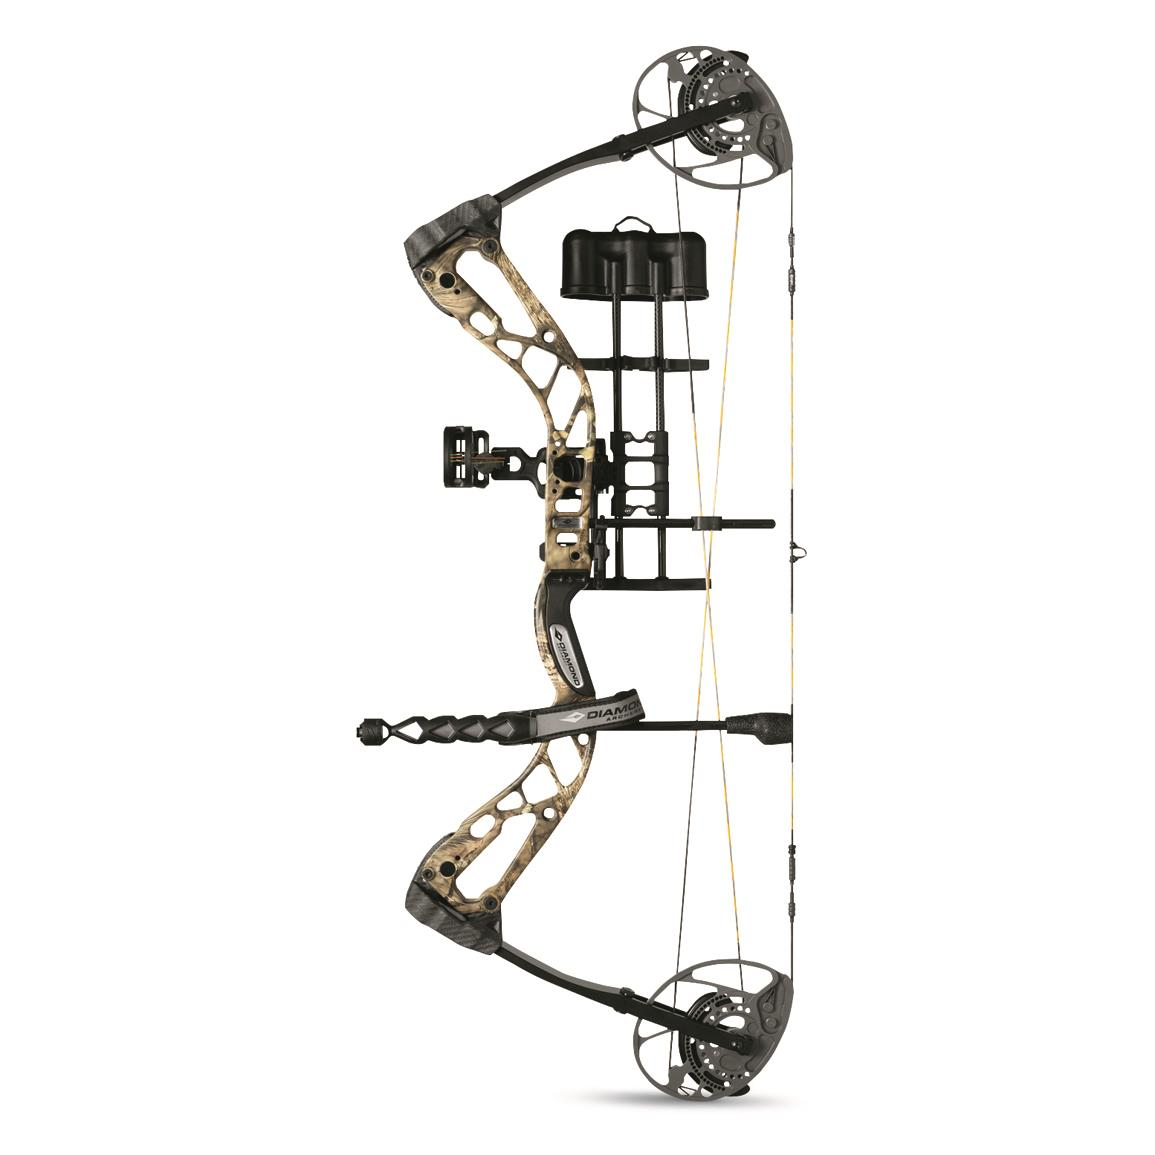 Diamond Archery Edge 320 Compound Bow Package, Mossy Oak Break-Up Country, Right Hand, Mossy Oak Break-Up® COUNTRY™